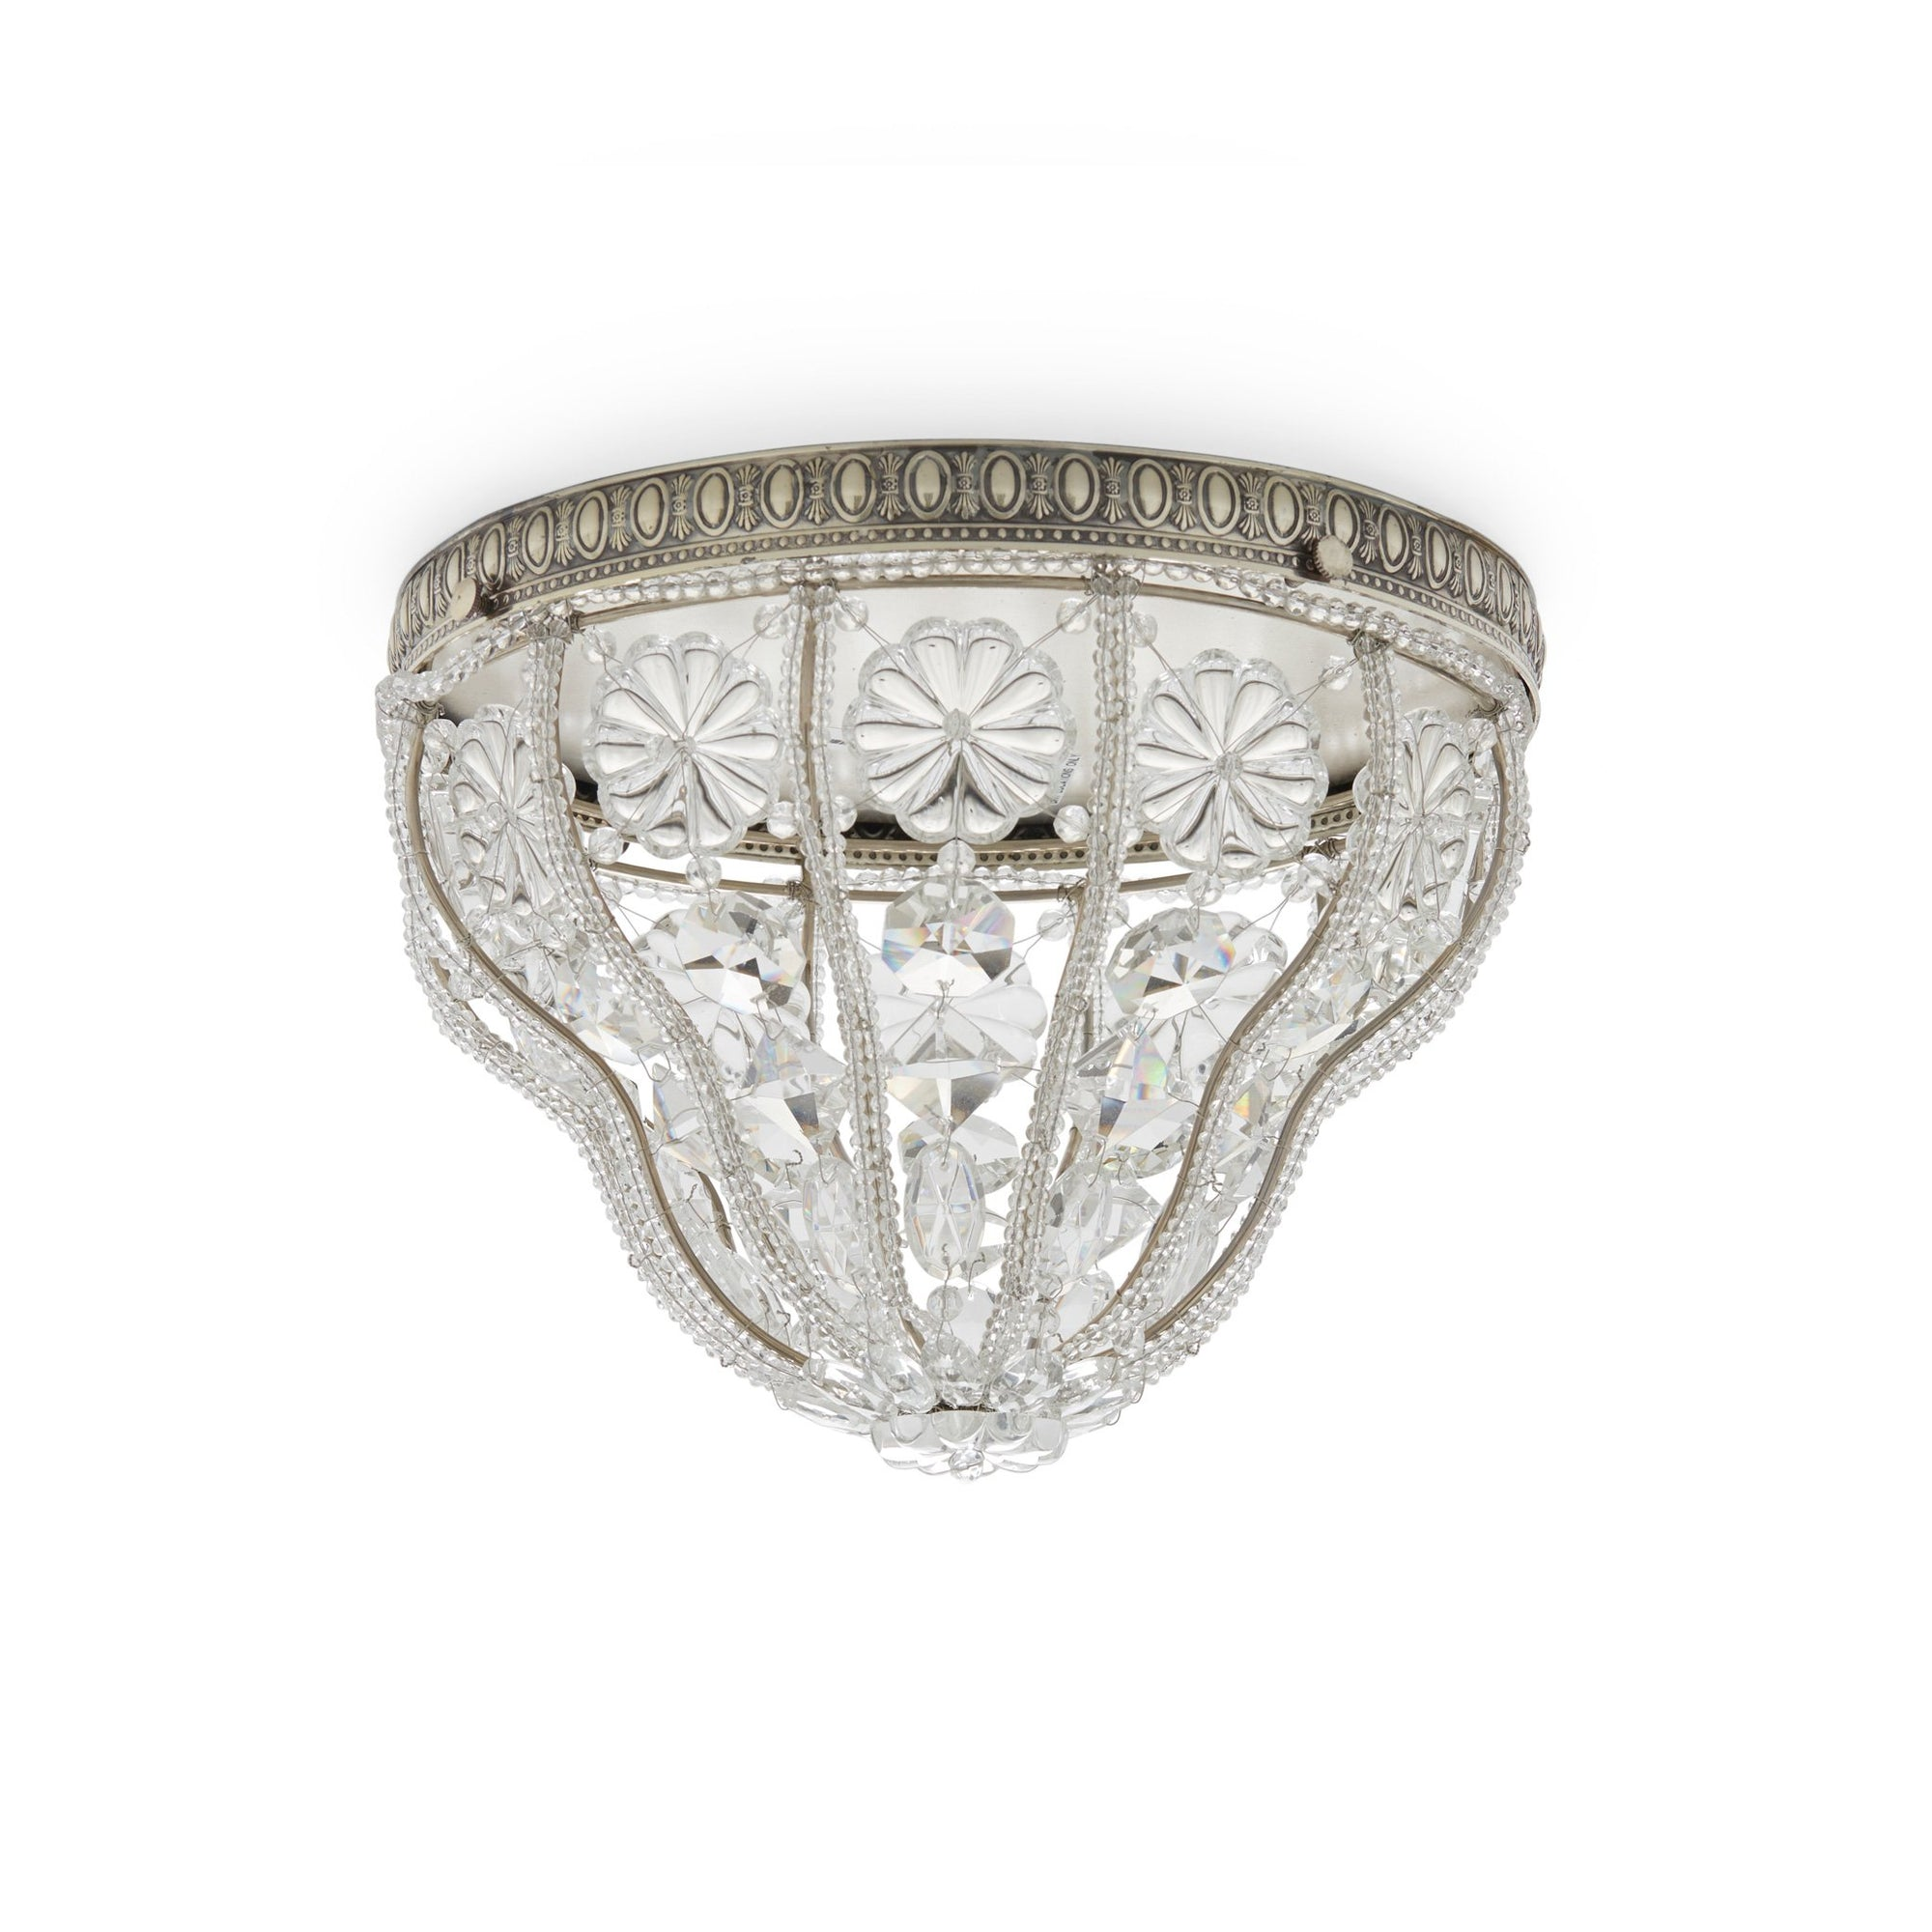 7120-S Sherle Wagner International Crystal Dome Ceiling Light with Renaissance Canopy in Florentine Silver metal finish